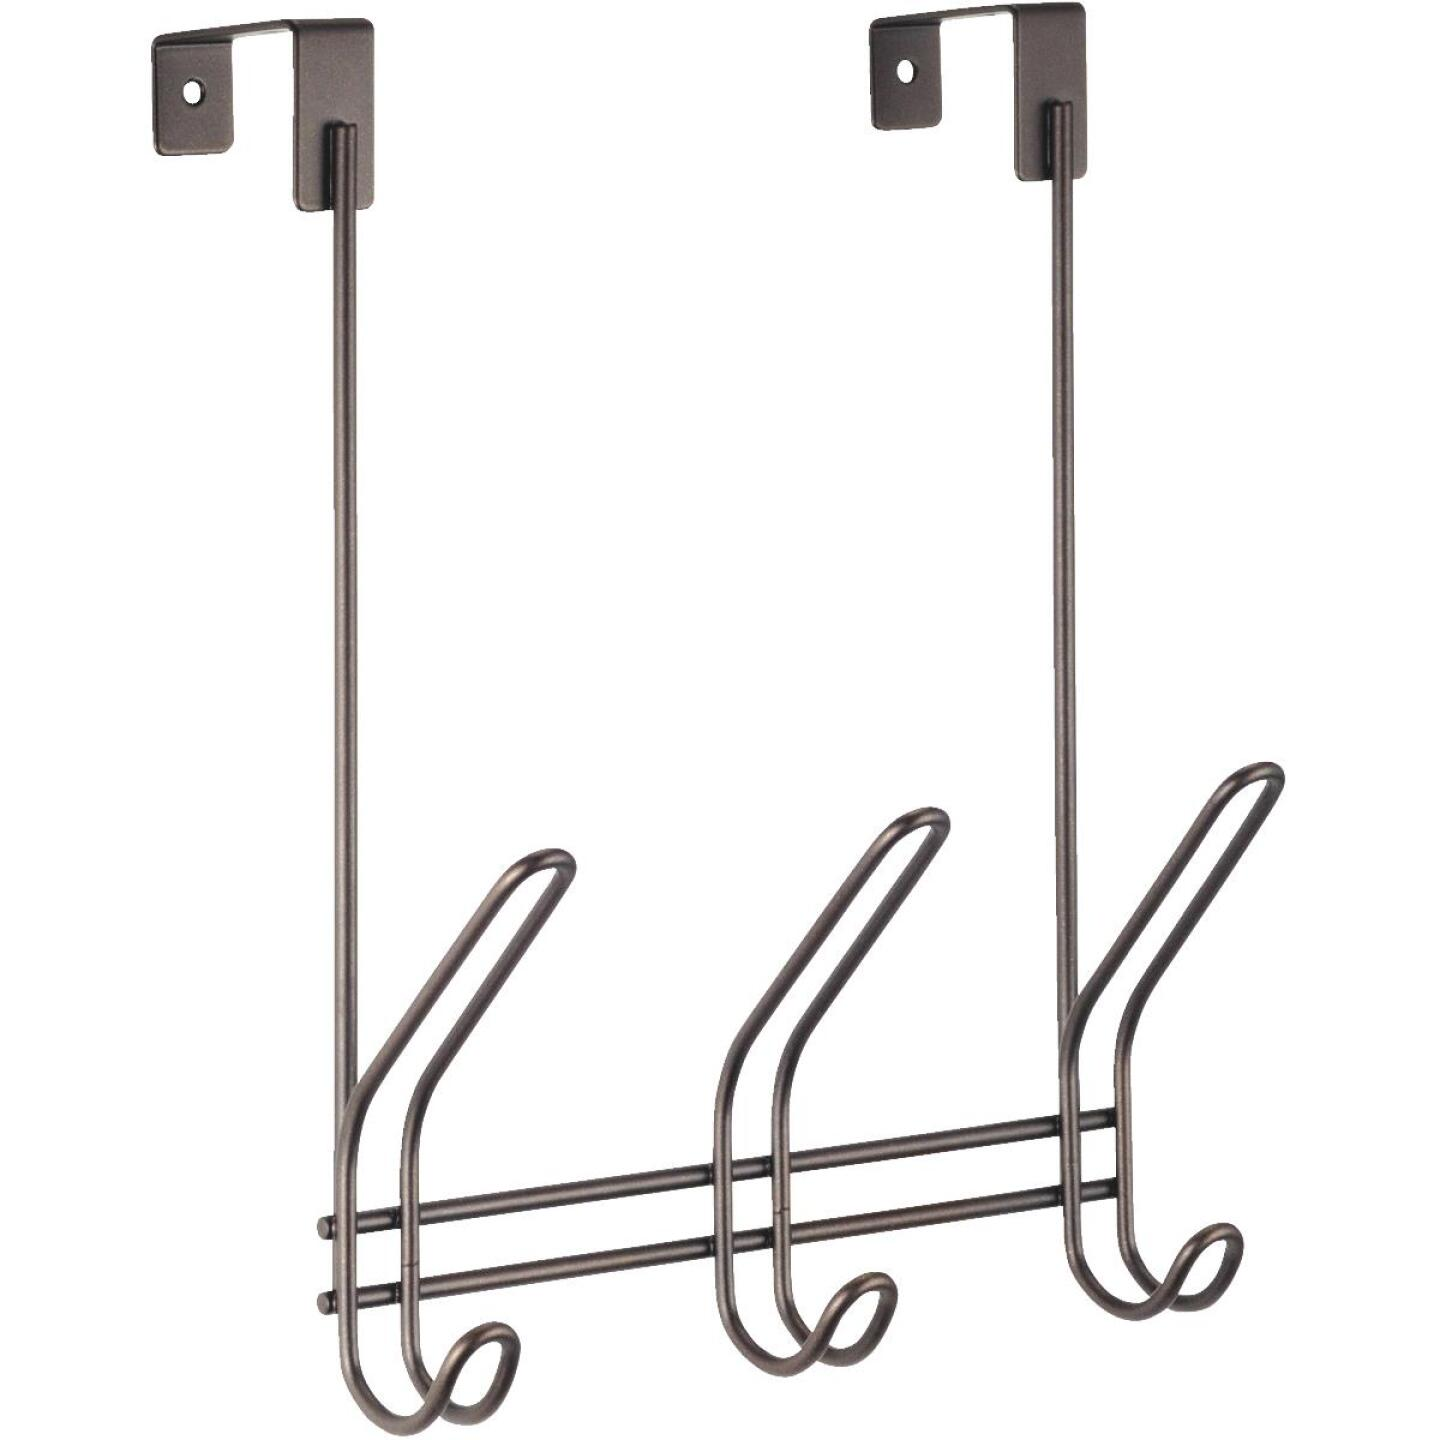 iDesign Classico Over-The-Door Bronze 3-Hook Rail Image 1